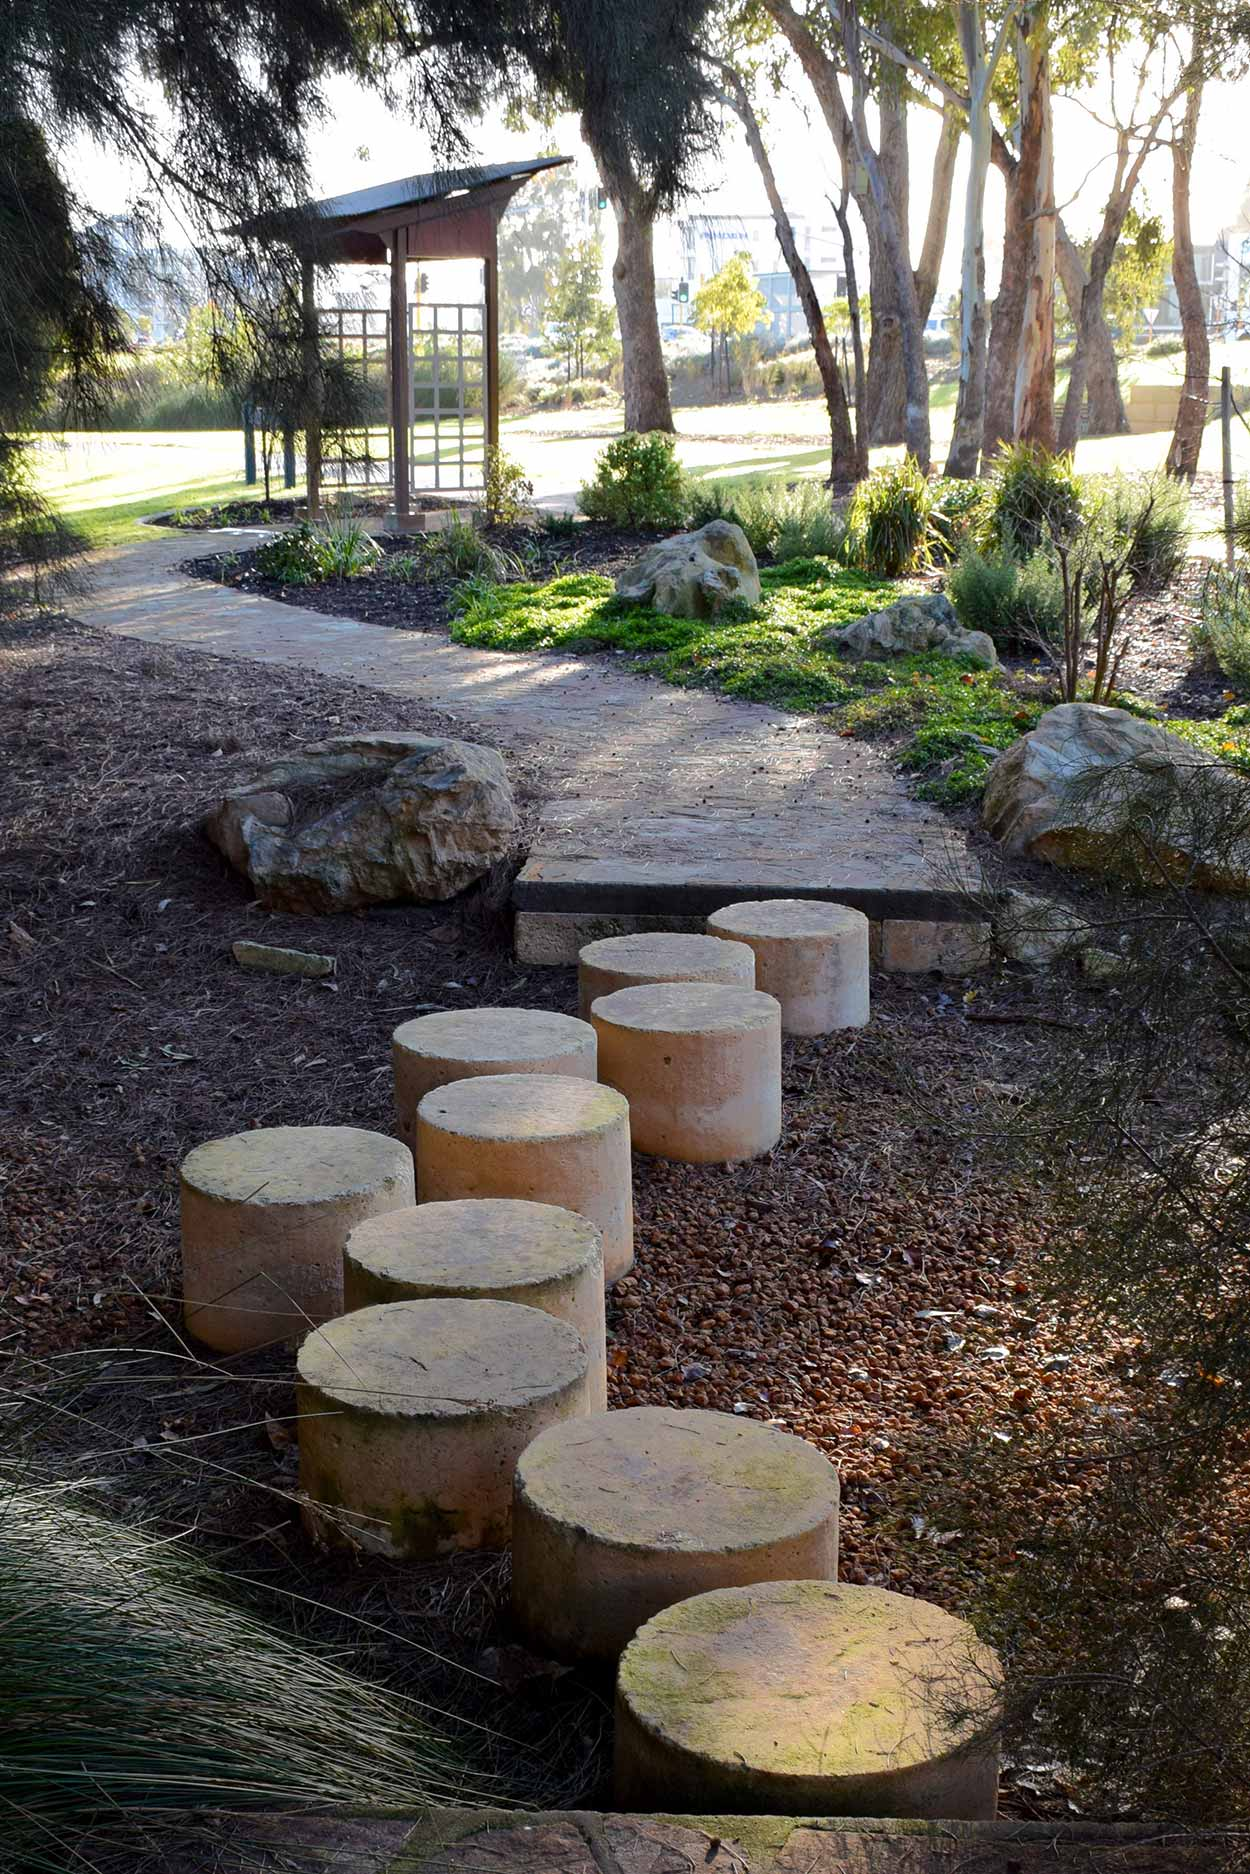 Stepping stones within Adachi Park on the Belmont bank of the Swan River, Perth, Western Australia